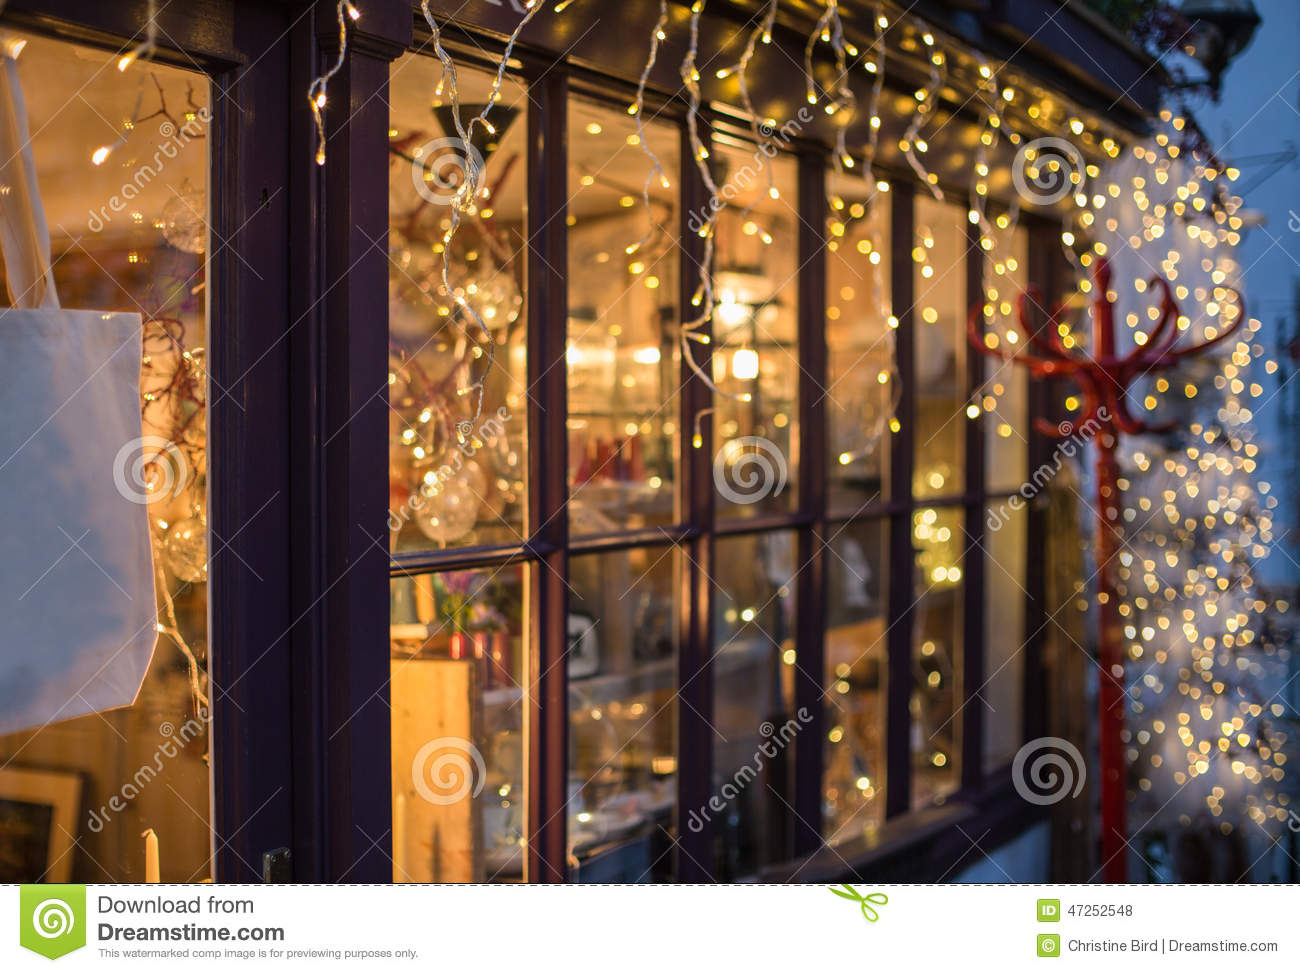 festive lights outside a shop window